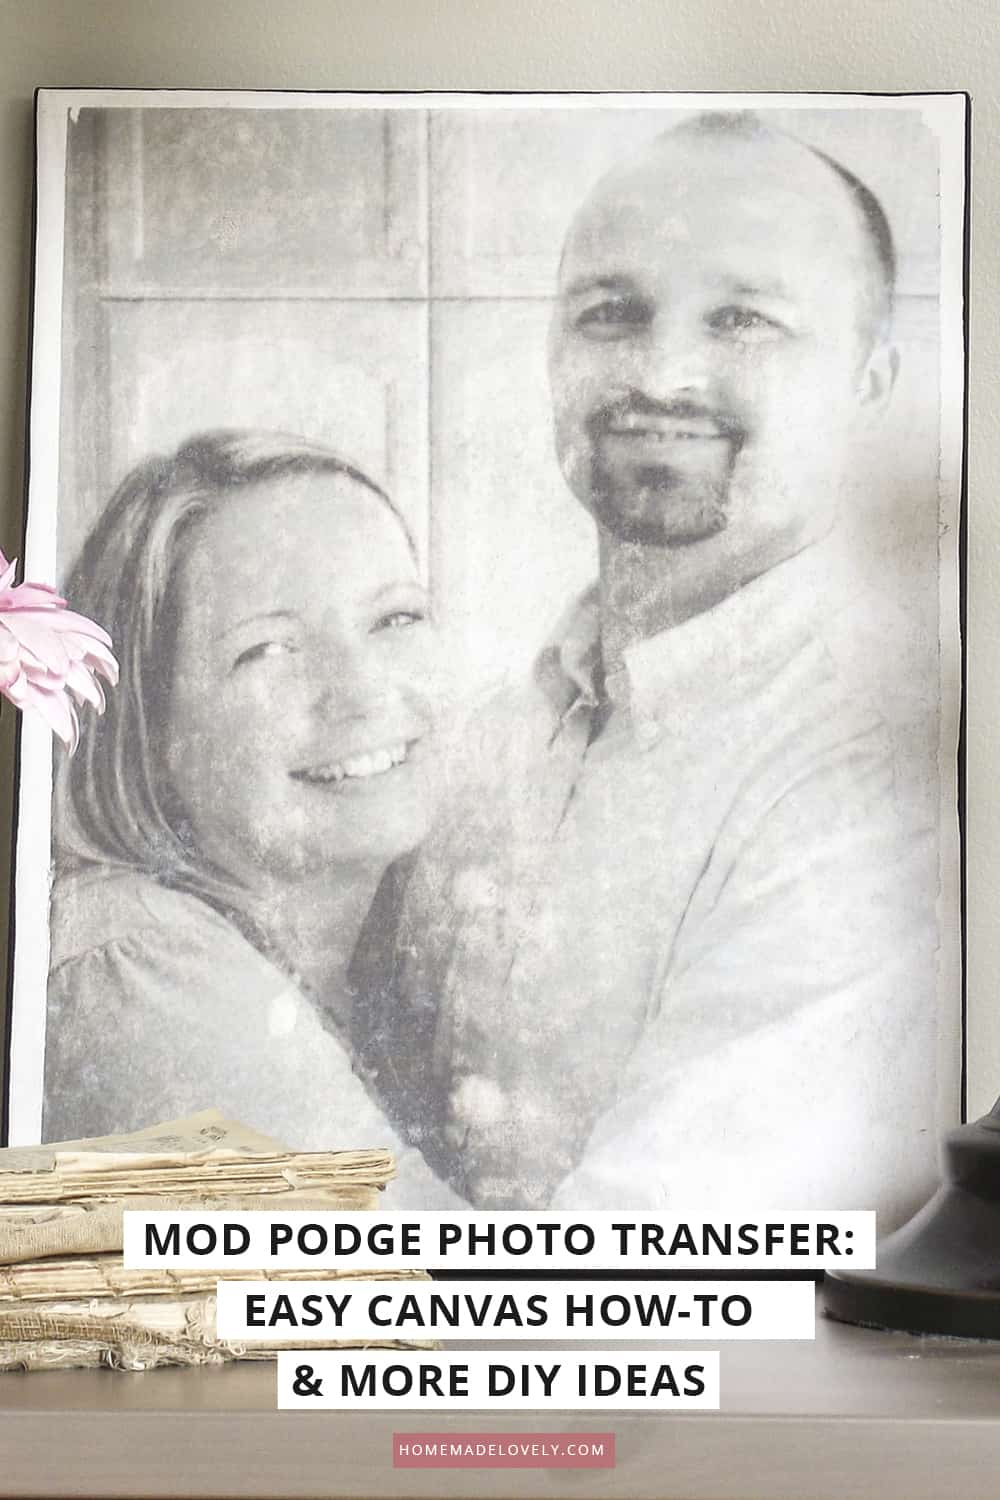 How to use Mod Podge Photo Transfer Medium to create home decor on wood, glass, fabric, canvas, etc. from your photos and art! FAQ, tips and ideas